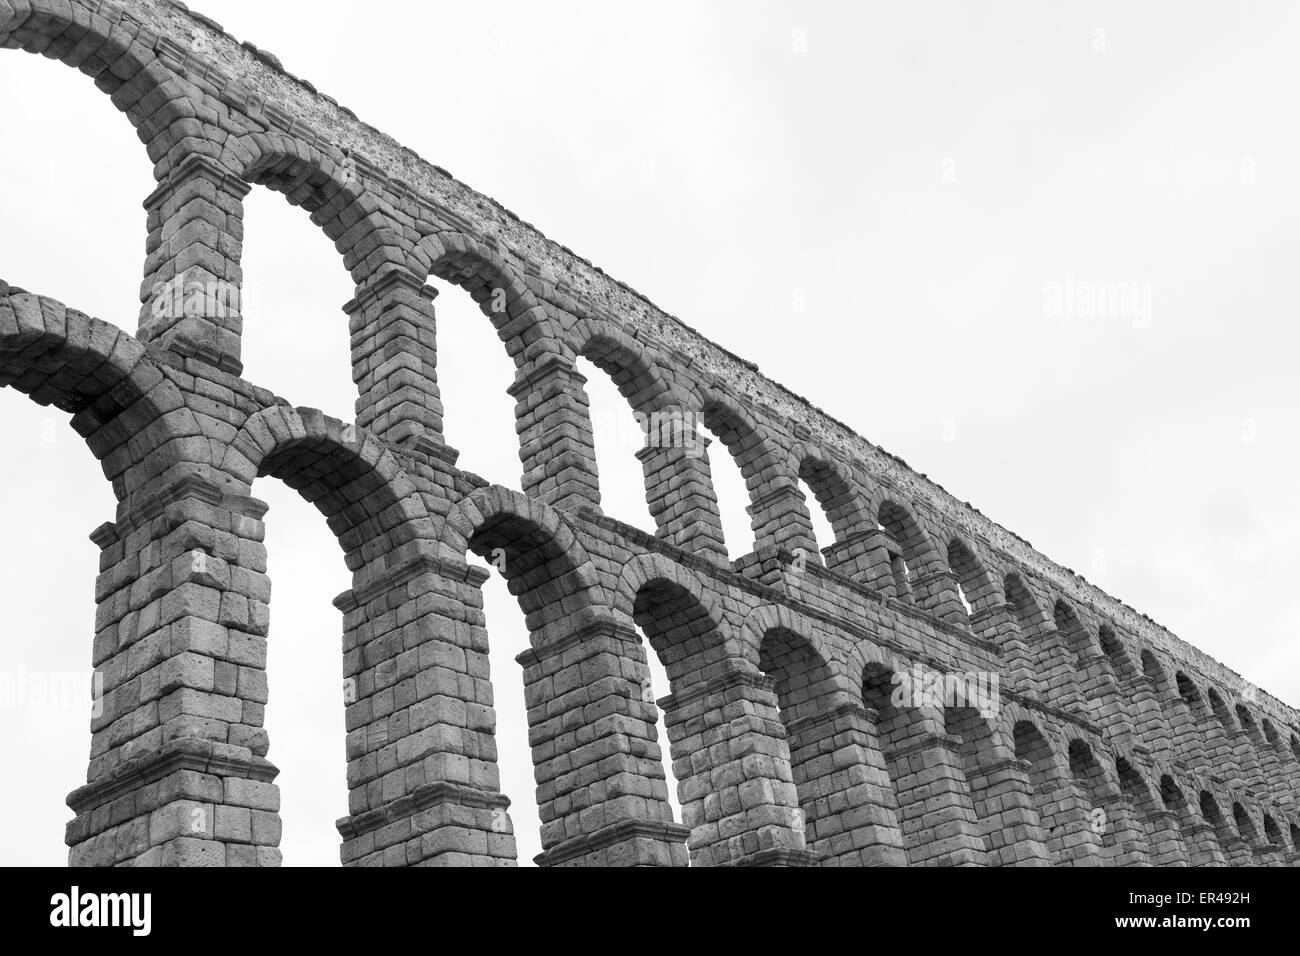 an old stone aqueduct in Segovia, Spain - Stock Image